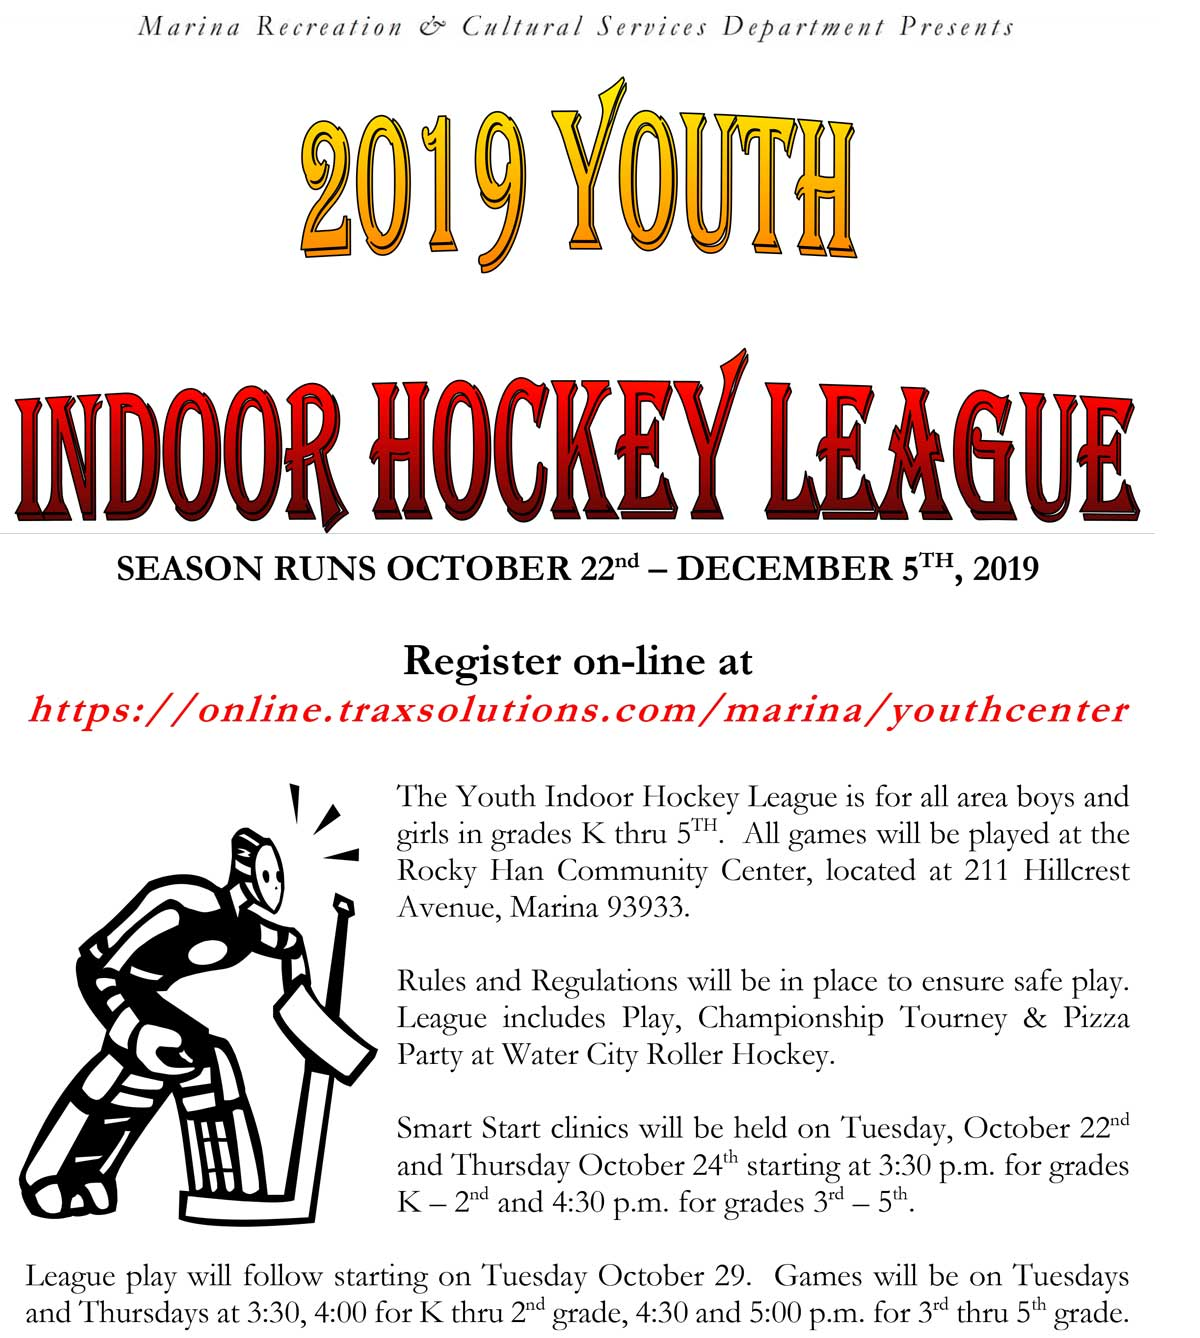 2019 Indoor Hockey League Flyer